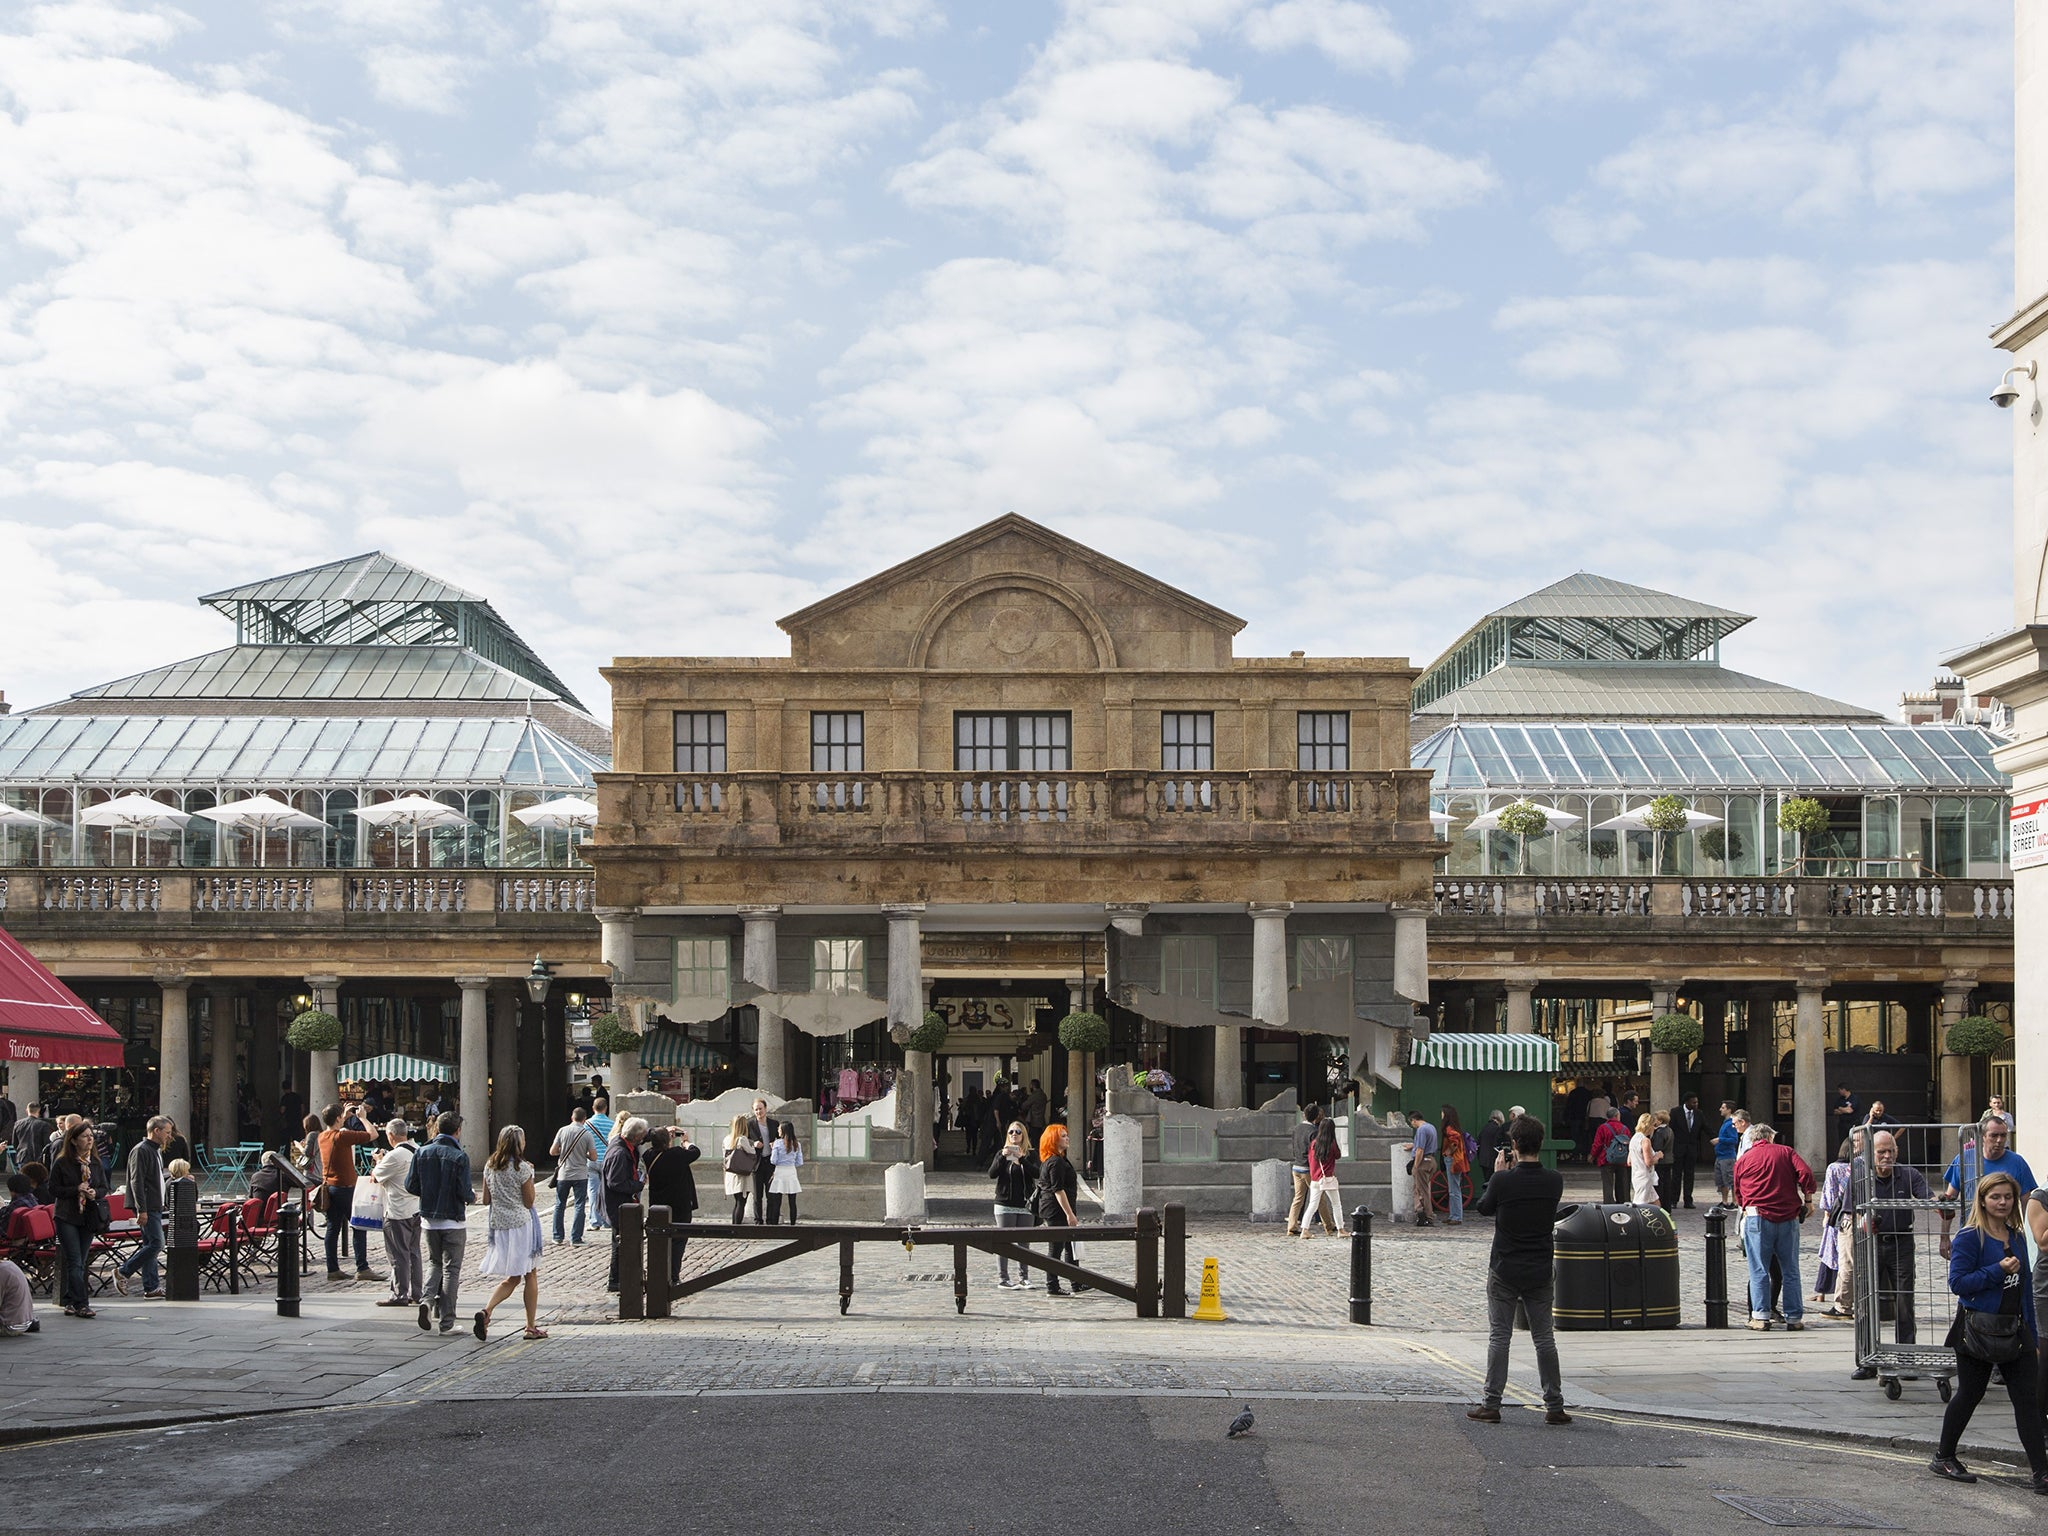 Covent Garden's sensational 'floating house' surrenders its